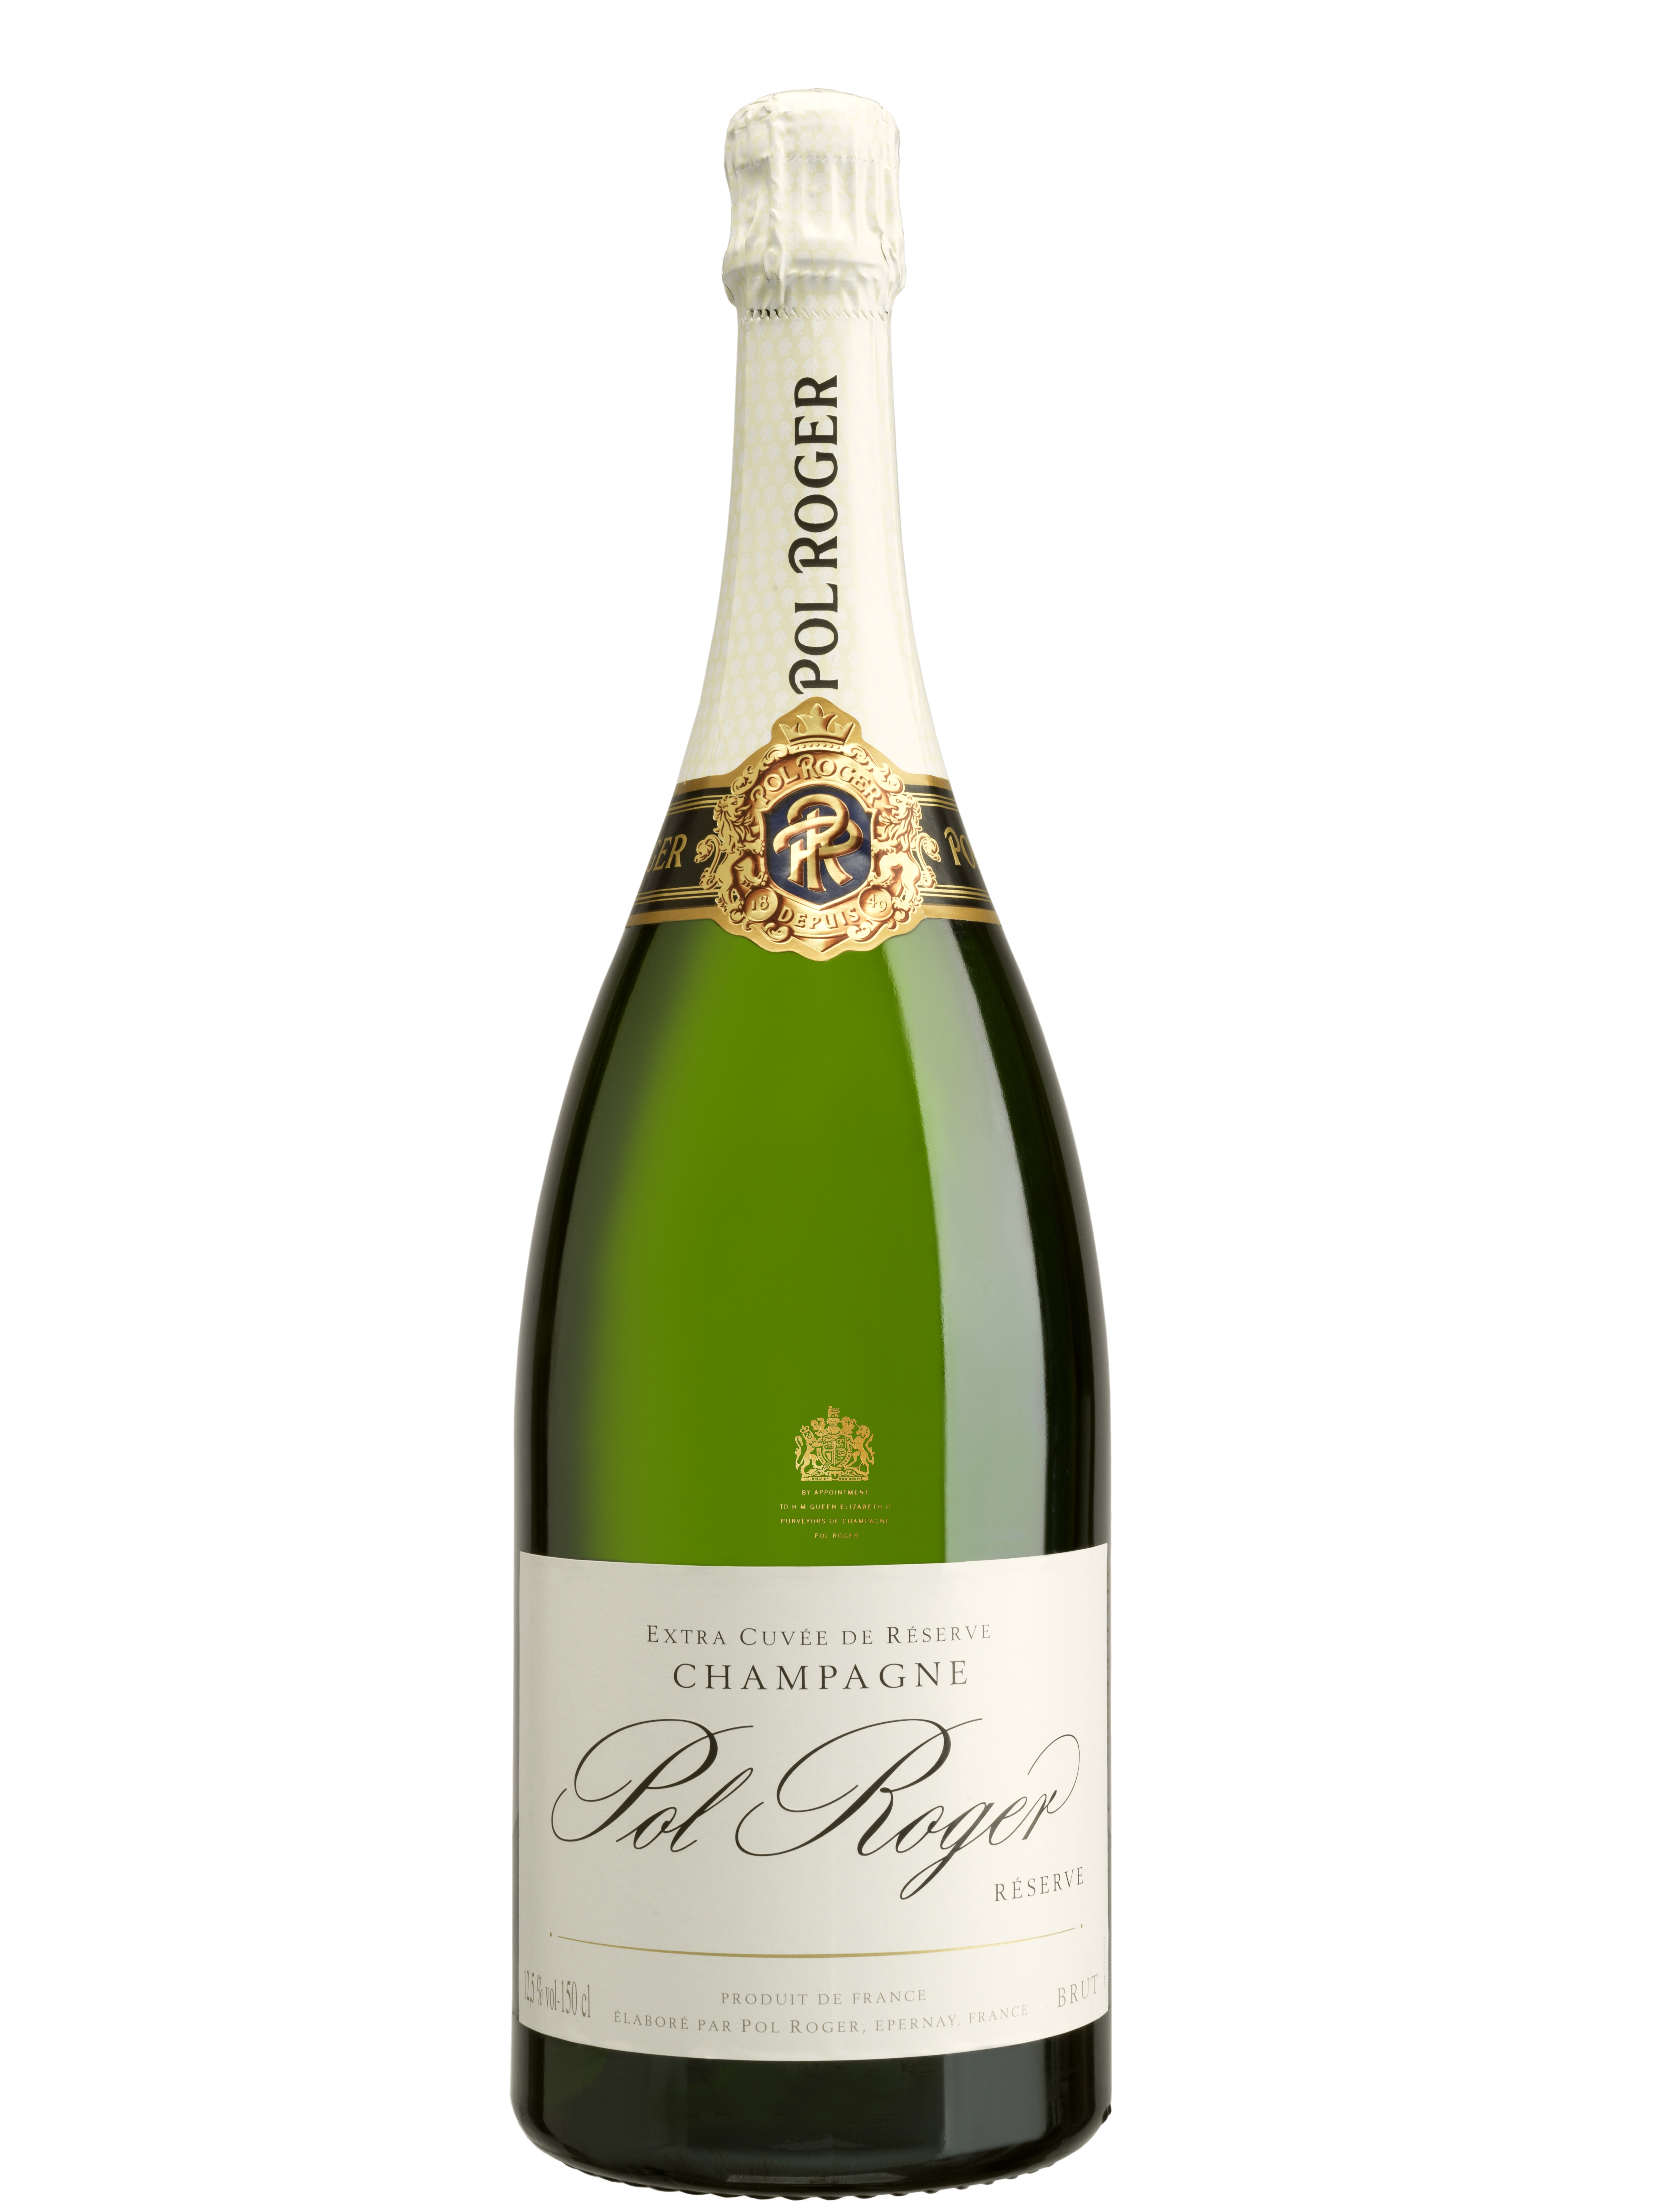 The hostess requested bottles priced around $25, on average. A truly good bottle of French Champagne' like this Pol Roger, will cost you around $35, but my other lower-priced picks will help you average this out.